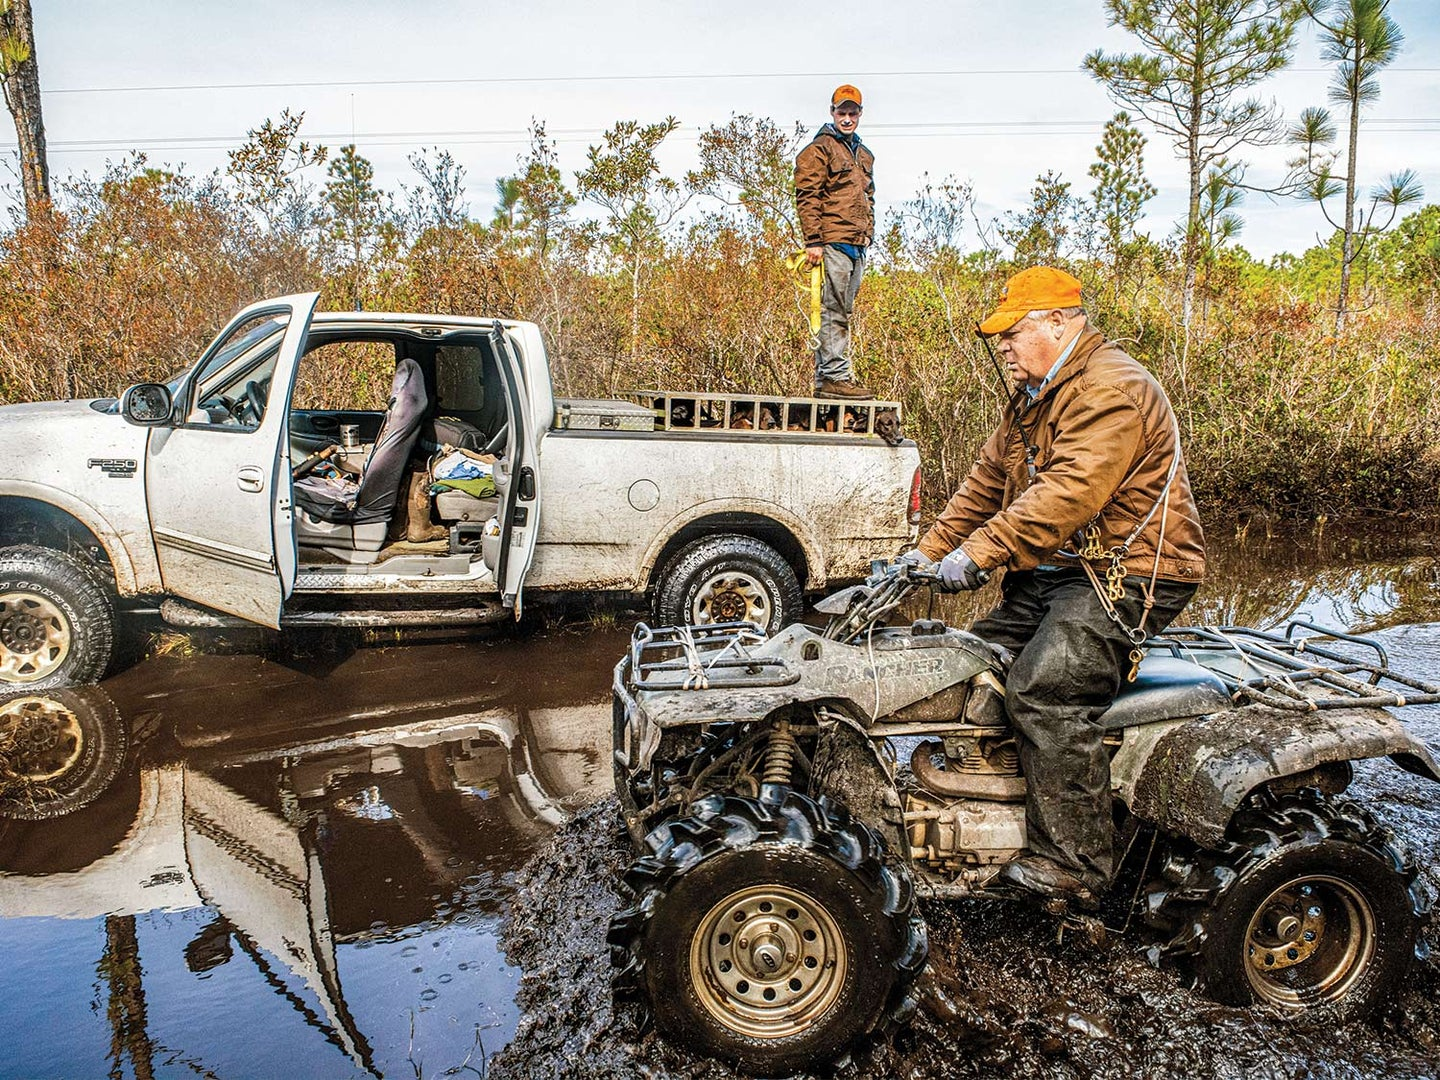 A hunter drives a four-wheeled ATV through the muddy water while one stands on top of a dog cage in the bed of a truck in the muddy water.